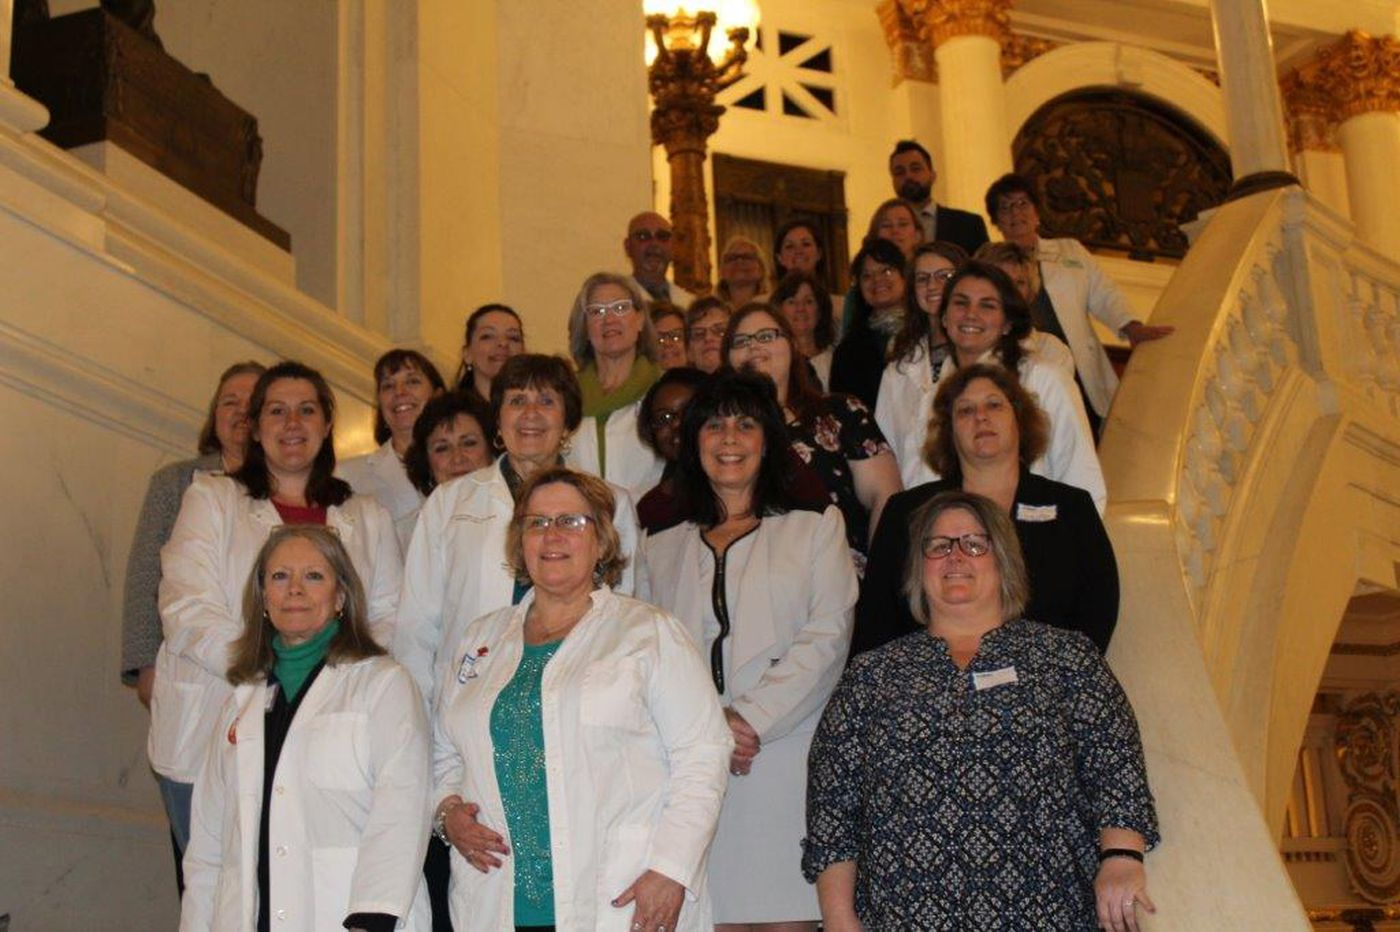 To fix staffing crises, hospitals in Pa. and beyond must listen to nurses | Opinion